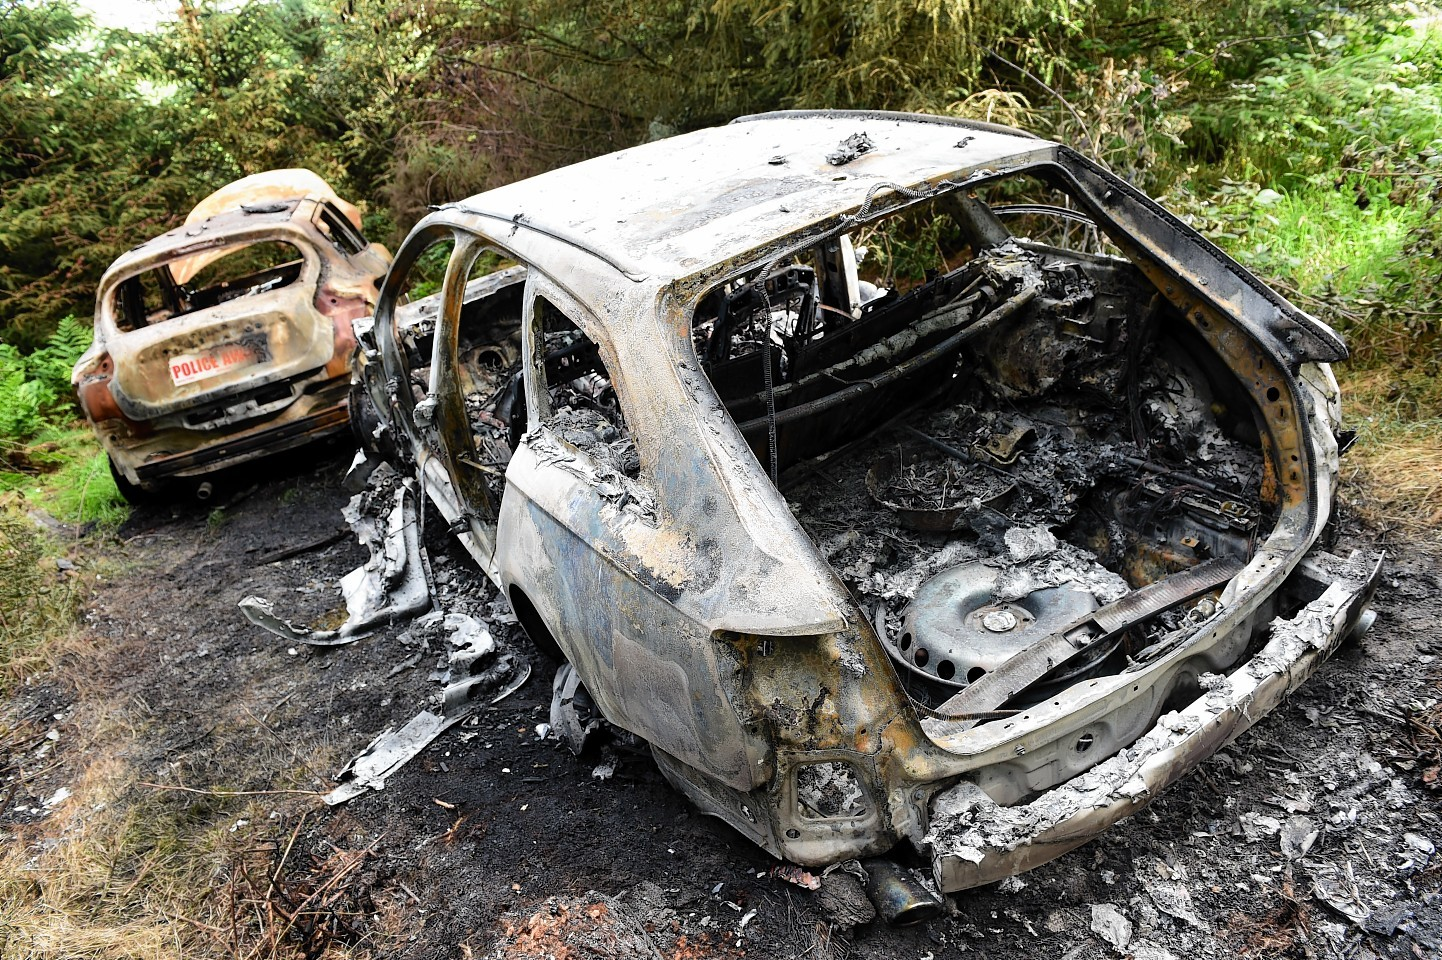 Two car stolen and burned in Hazlehead, Aberdeen